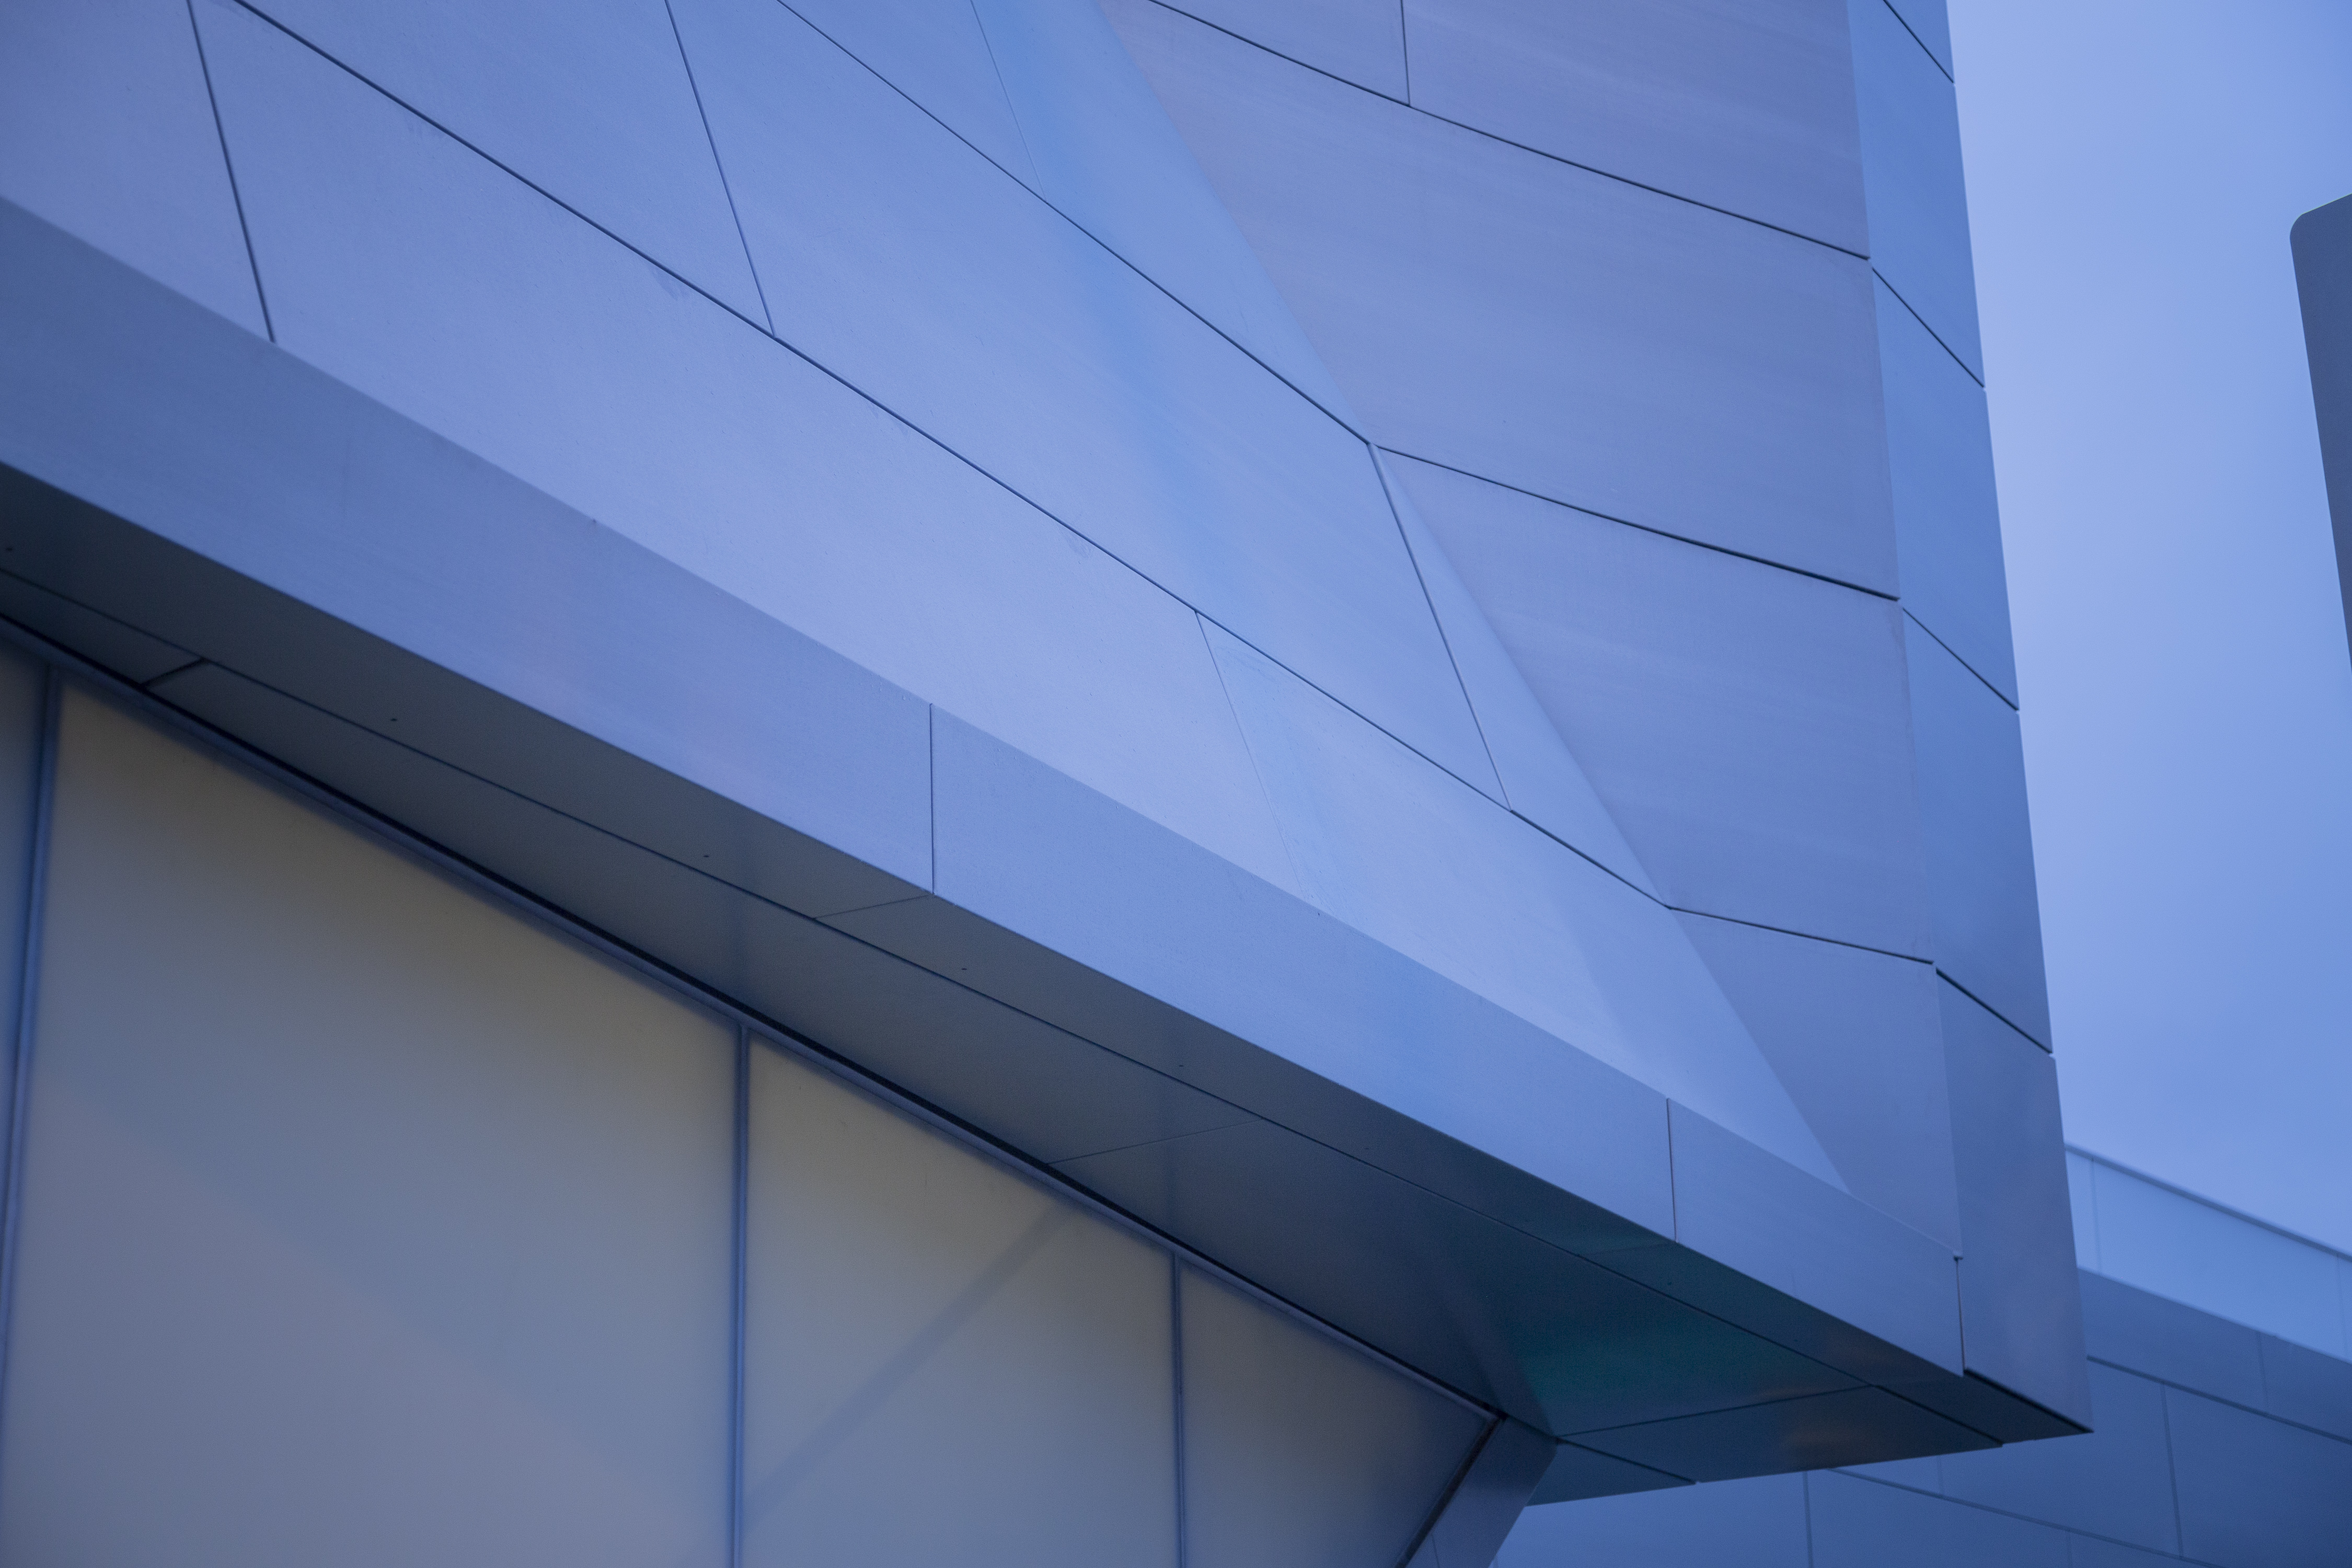 Complex surface geometry incorporated into the zinc panel system